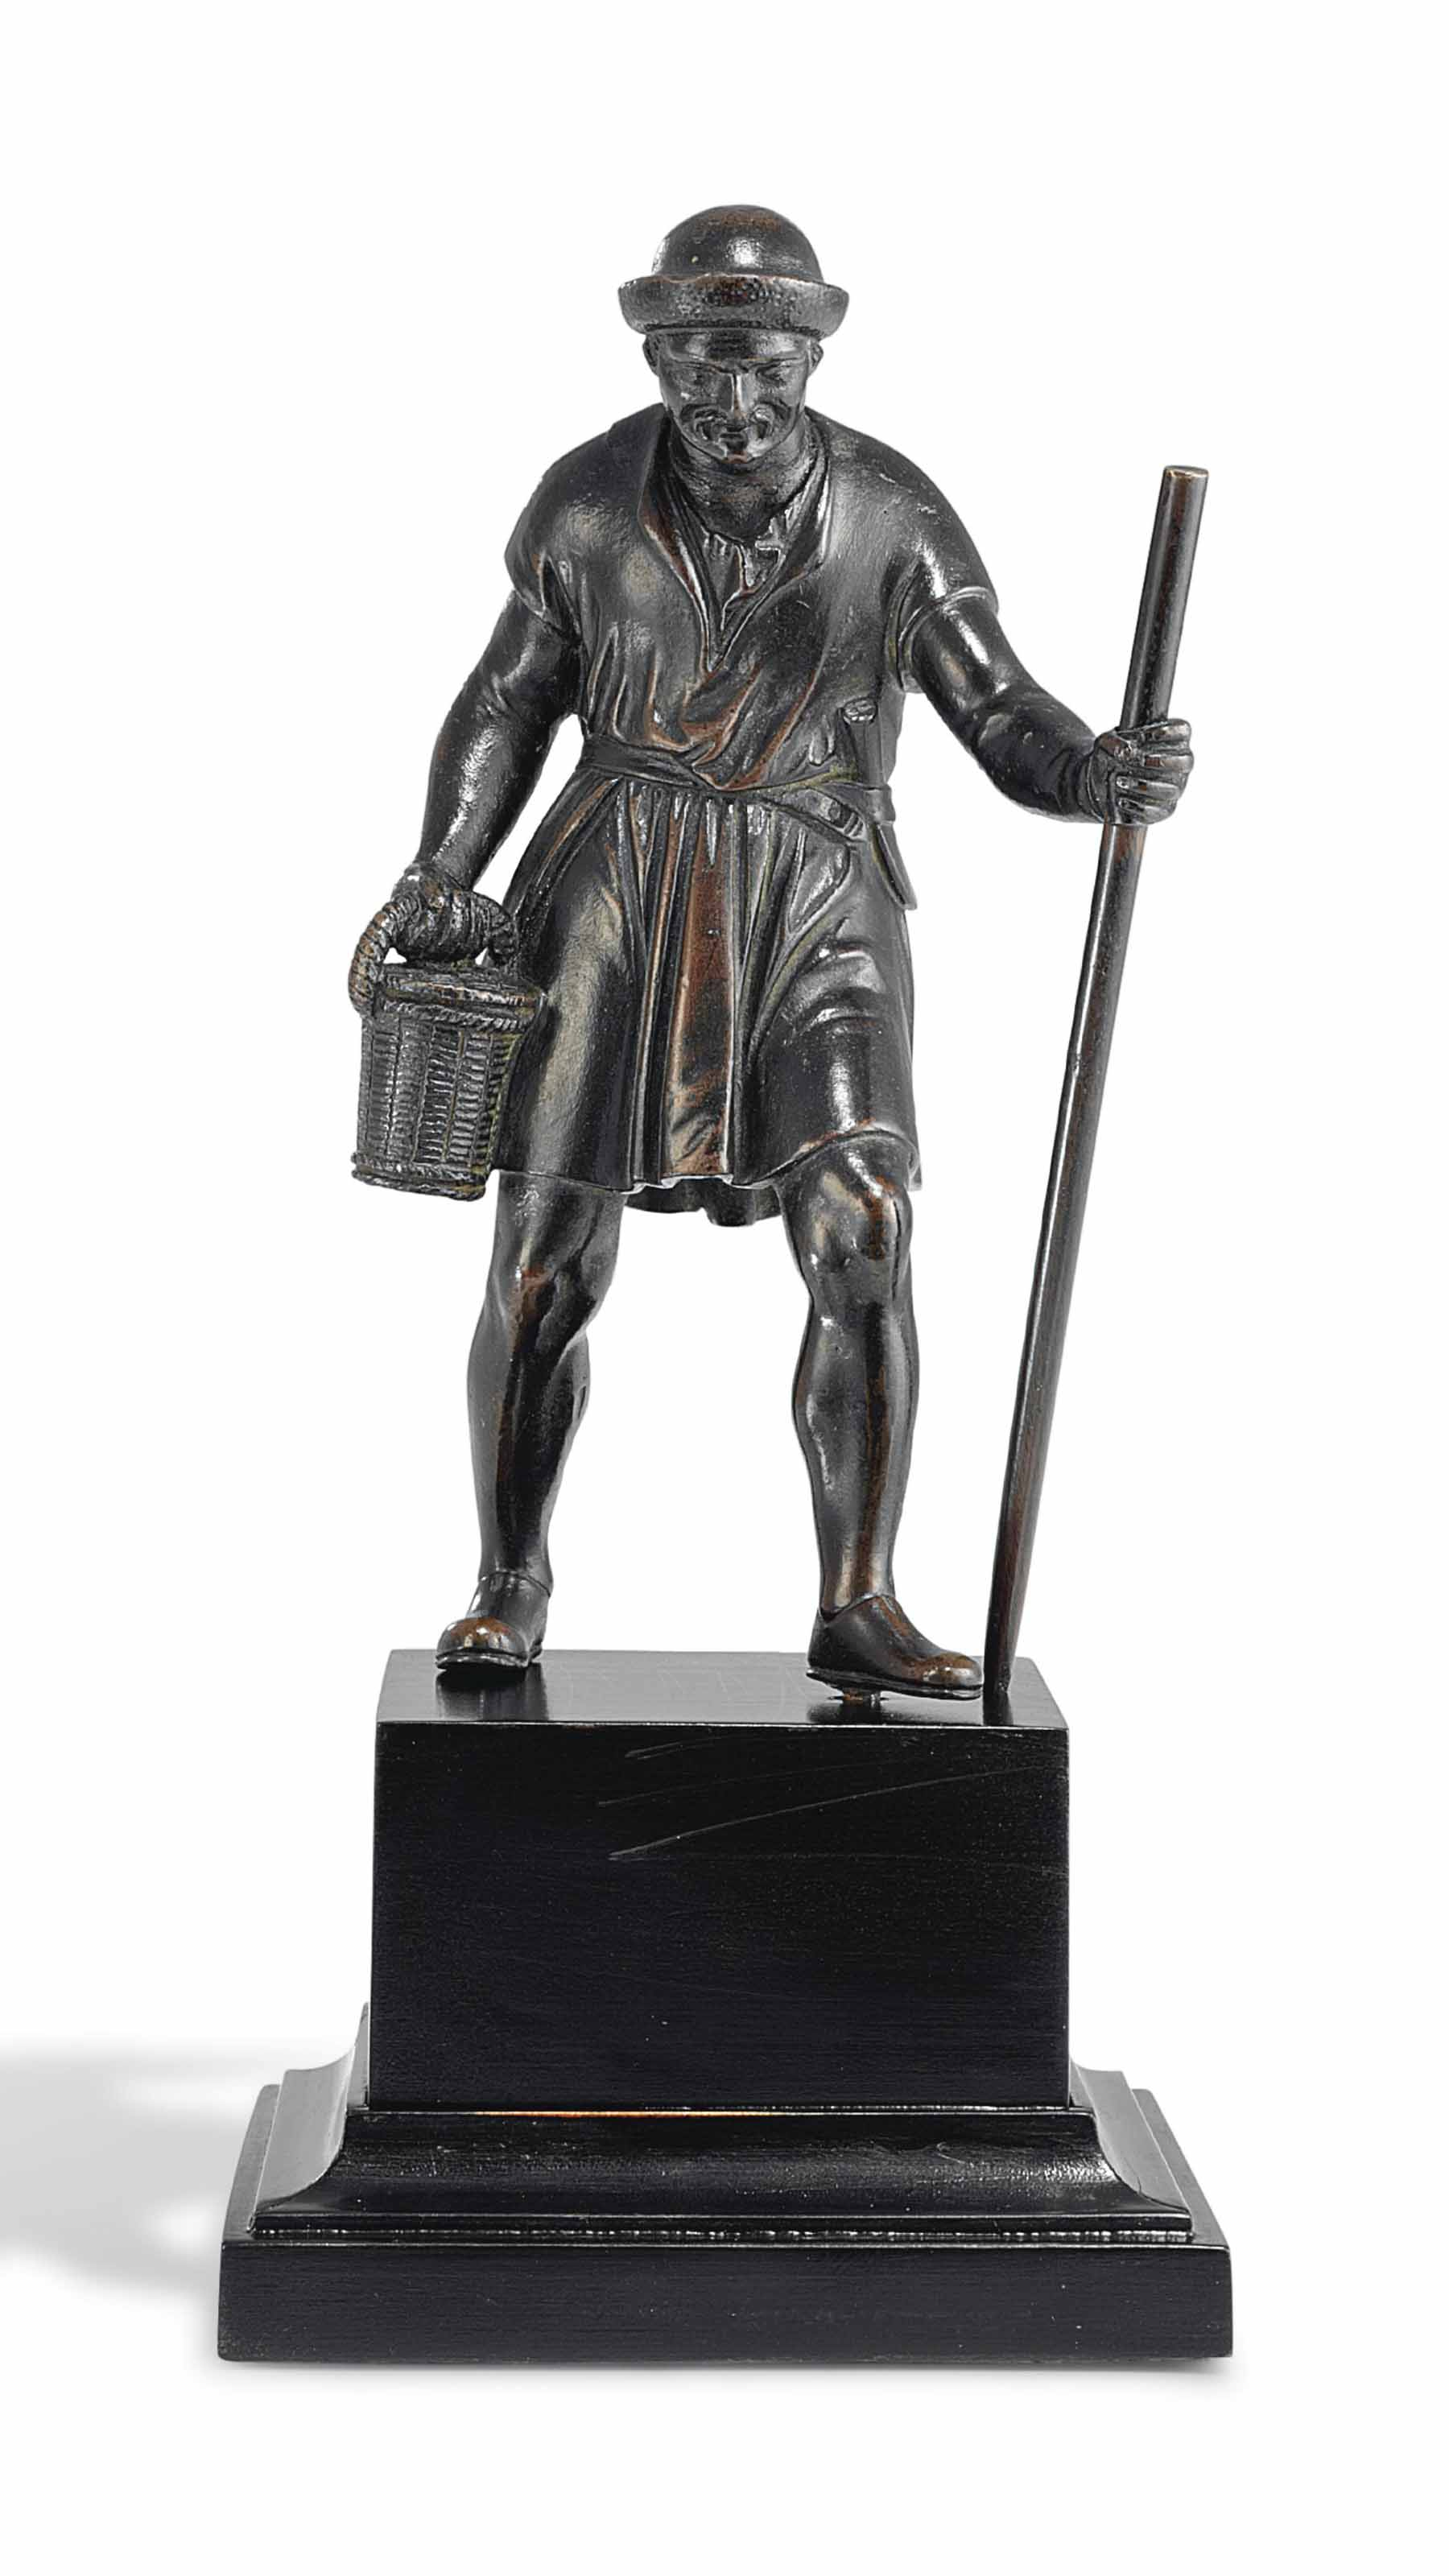 A BRONZE FIGURE OF A HARVESTER